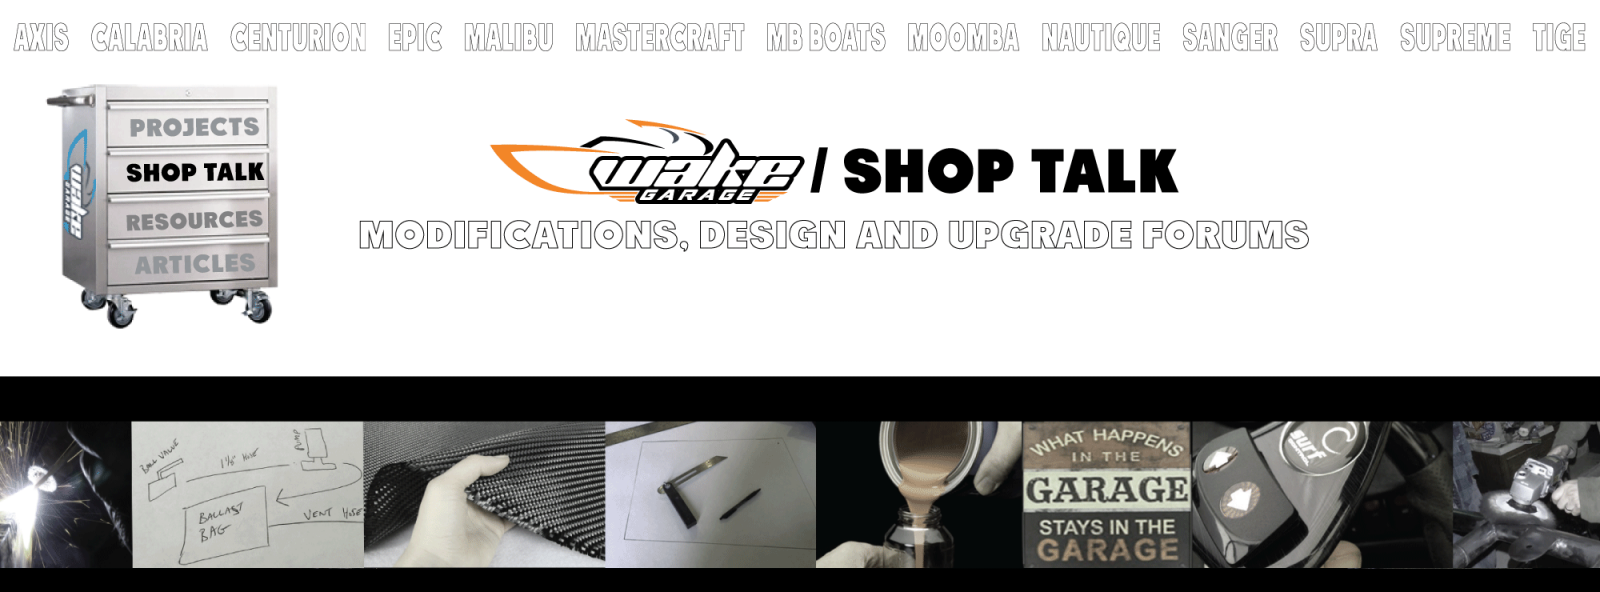 shop-talk-banner3.png